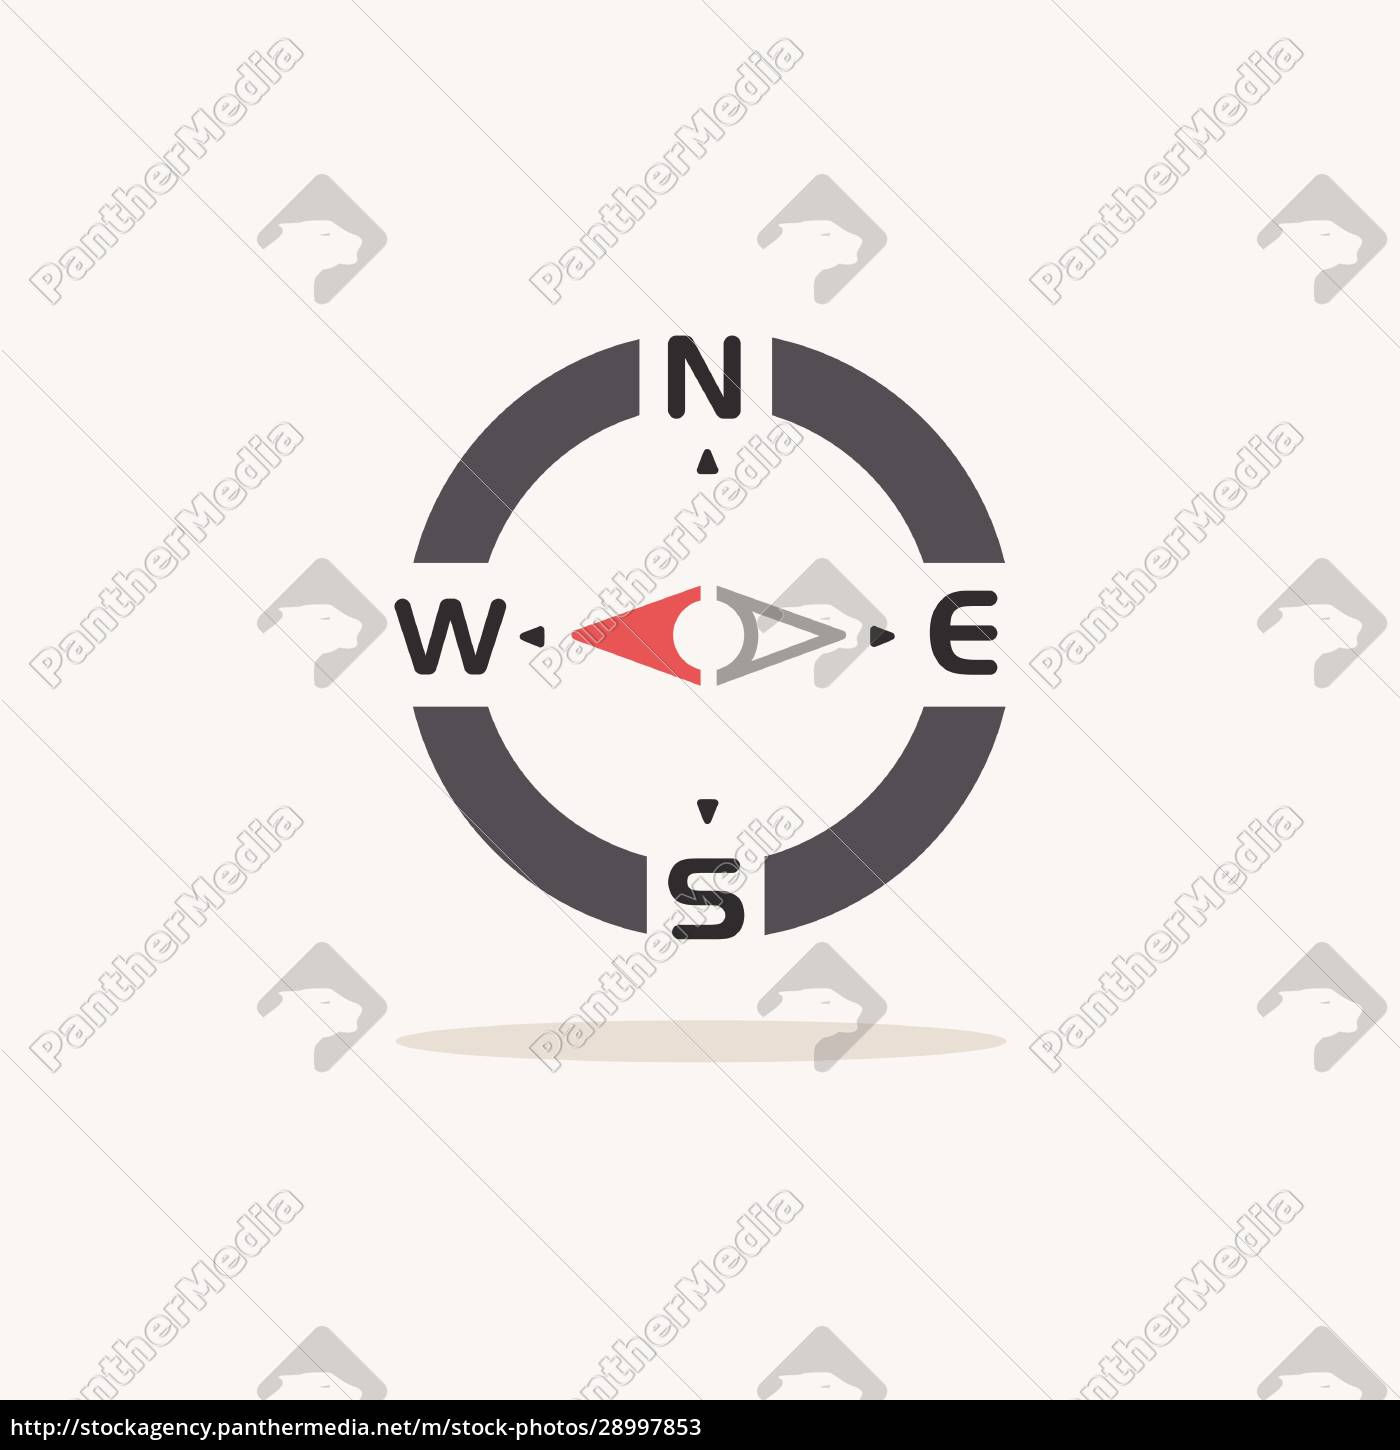 compass, west, direction., color, icon, with - 28997853